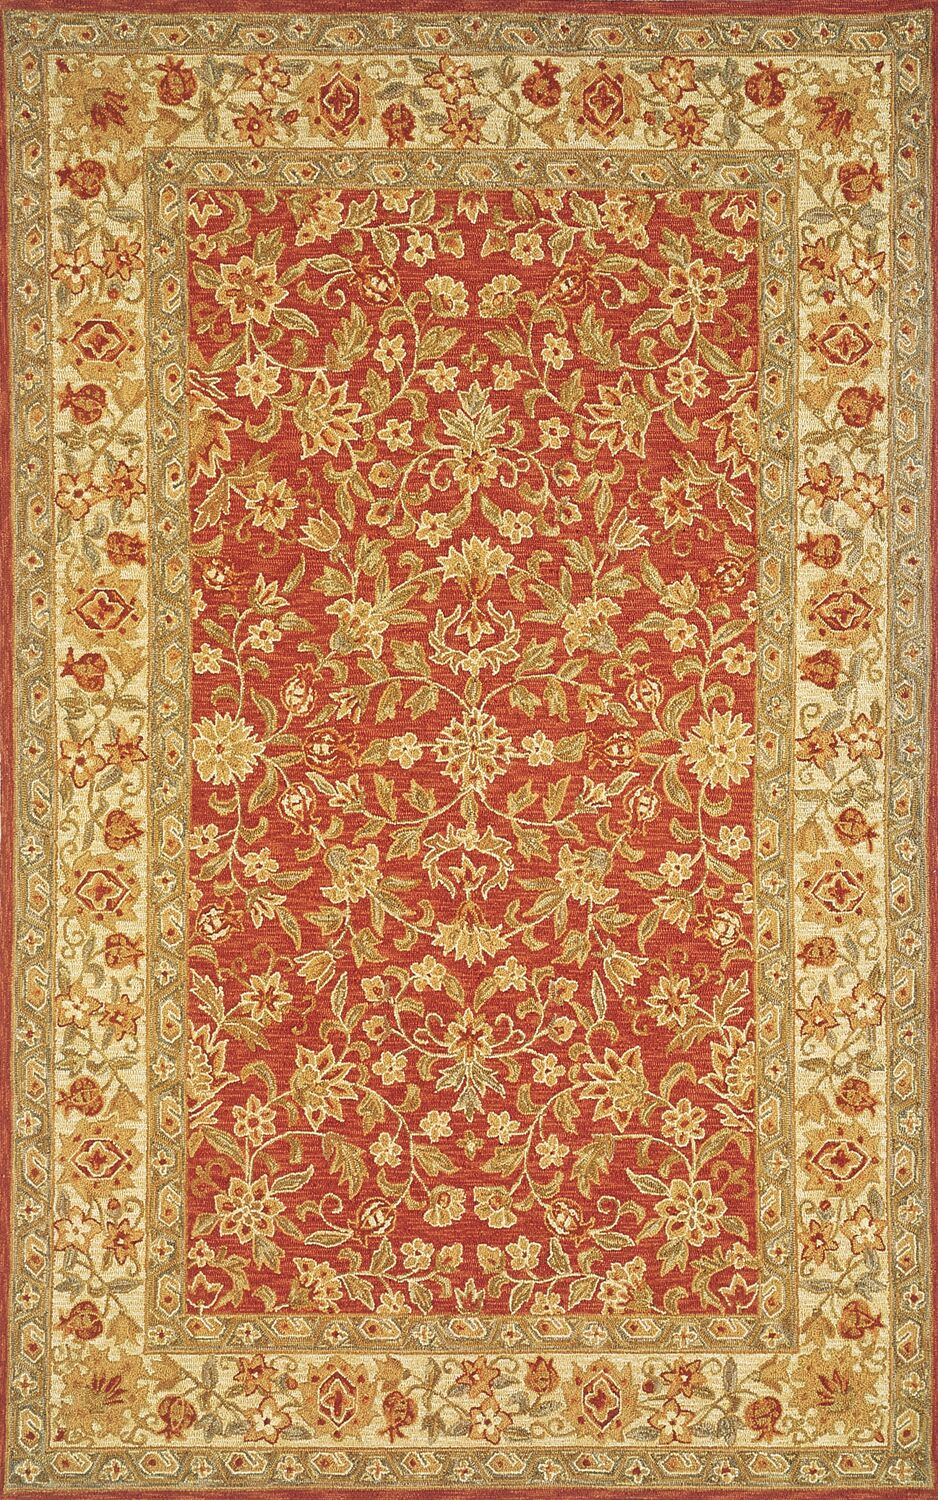 Medford Handmade Red/Gold Area Rug Rug Size: Rectangle 3'6